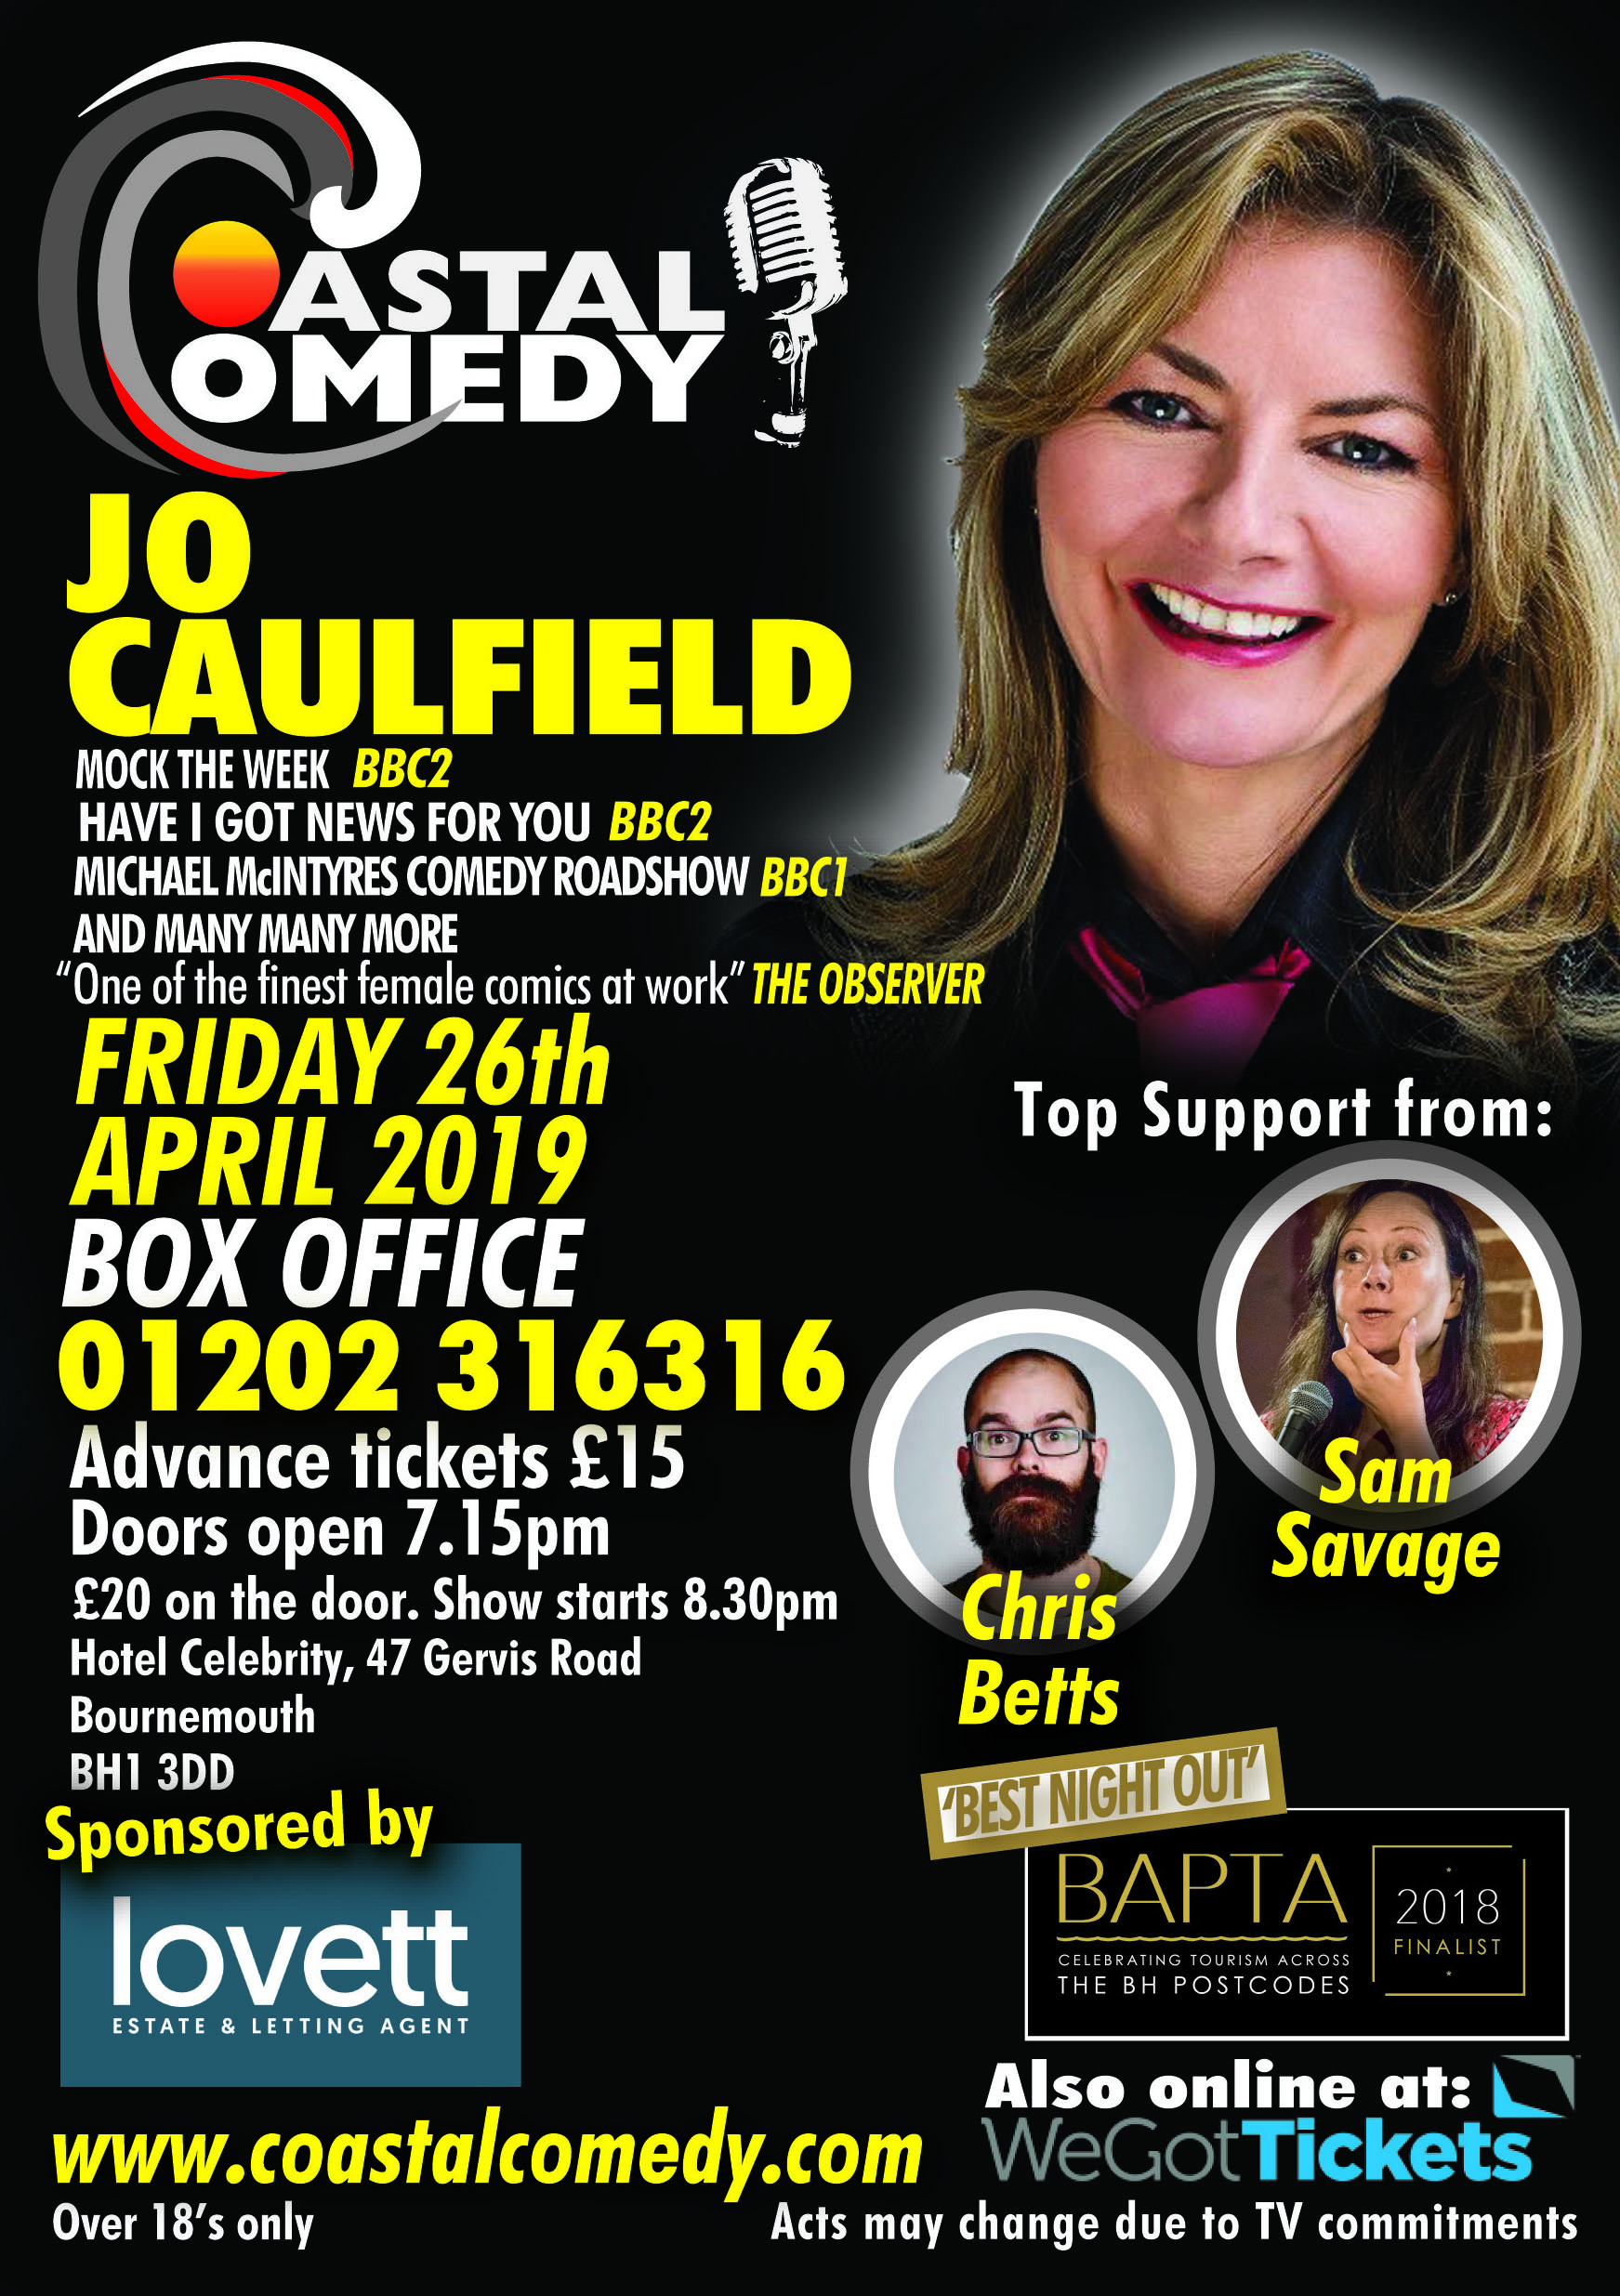 lighthouse, jo caulfield, bournemouth, lol, bournemouth, comedy, lol, pavillion, bournemouth,, dorset, coastal, comedy, best night out, LOL, pavillion, comic, stand-up, bournemouth, what's on, jokes, funny, lol,comic, comedian, noise next door,